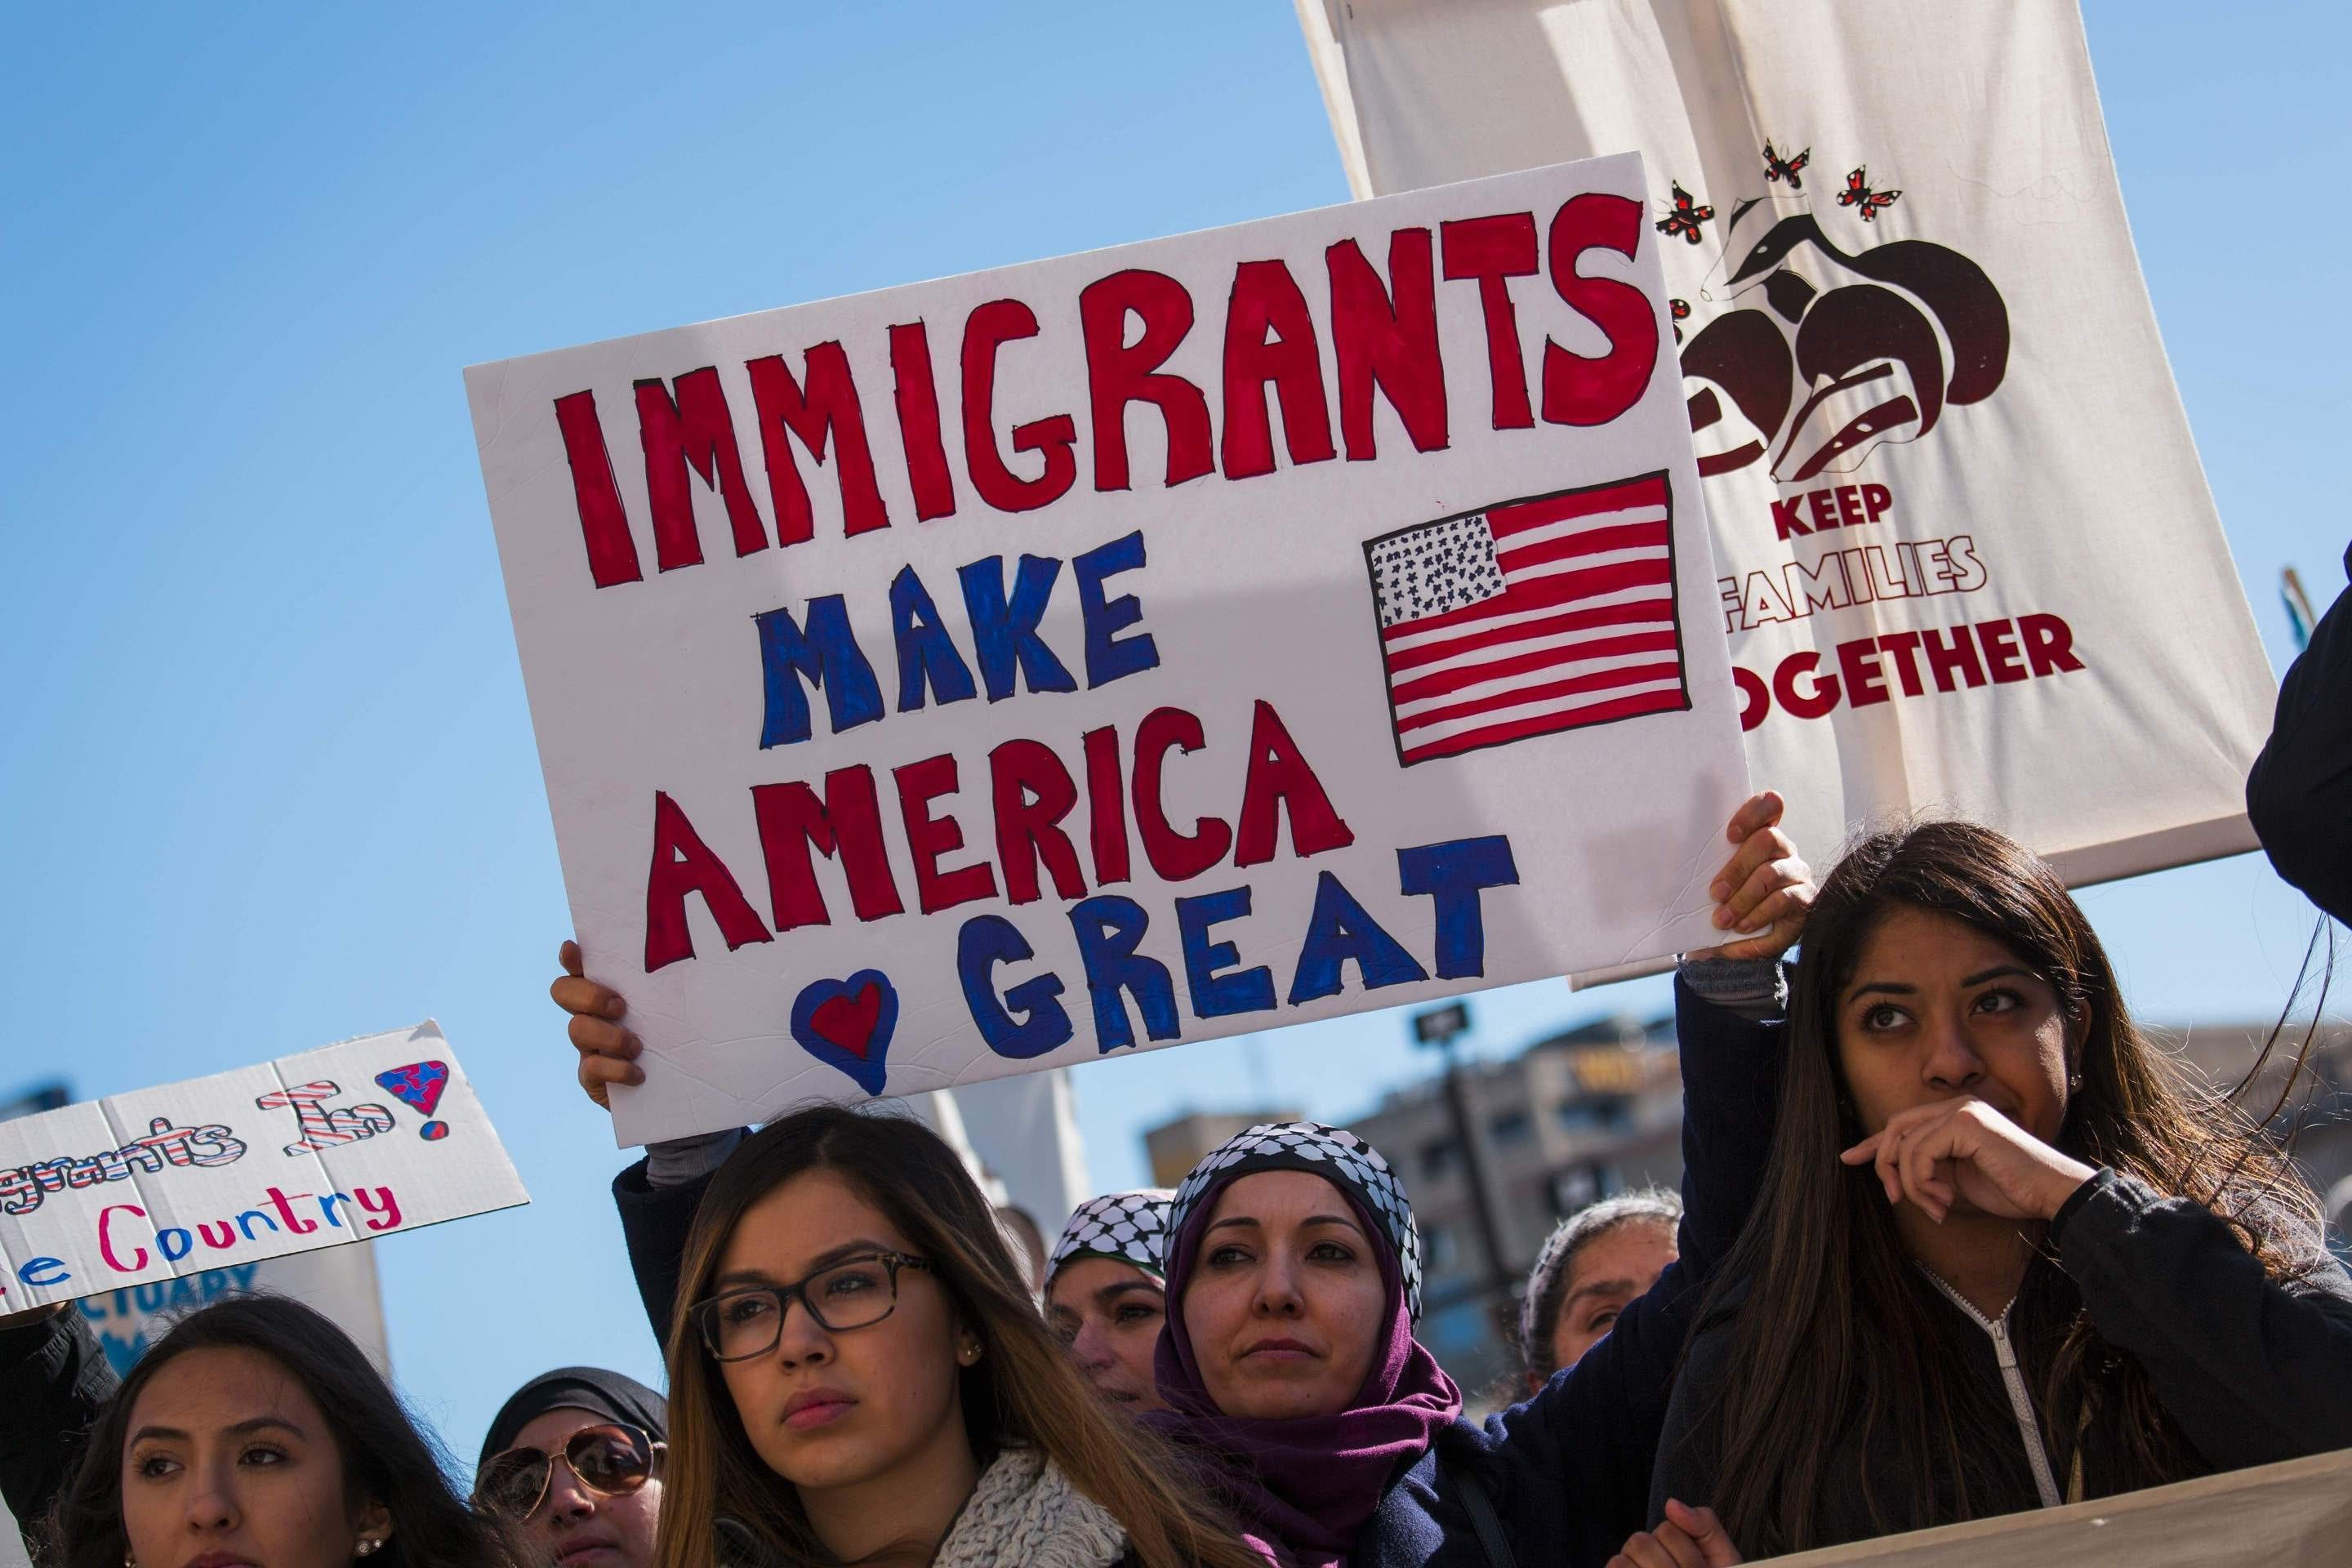 Image Immigrants make America great